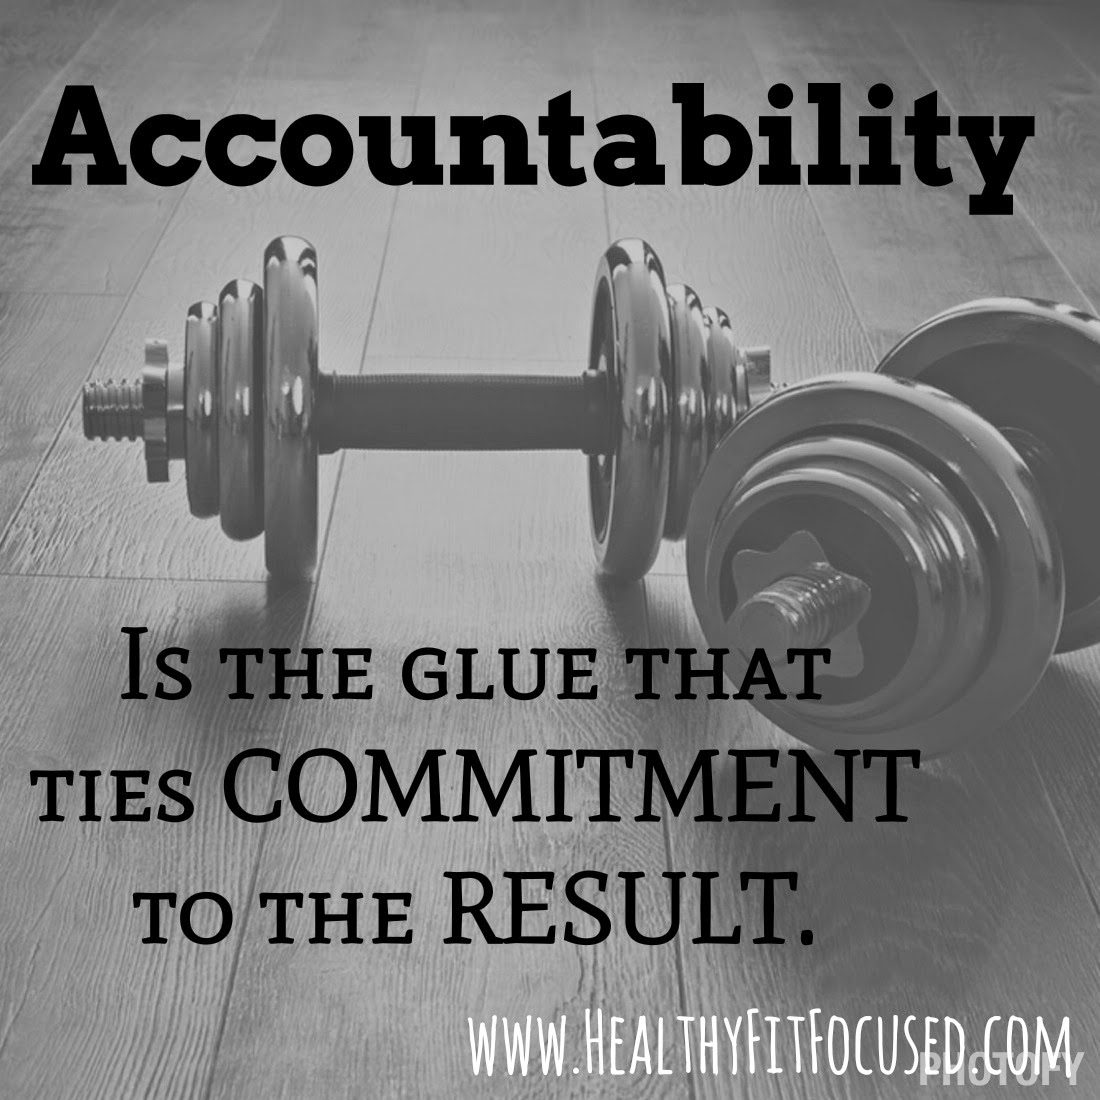 Accountability, lose weight, commitment, Jiggle Free July Challenge